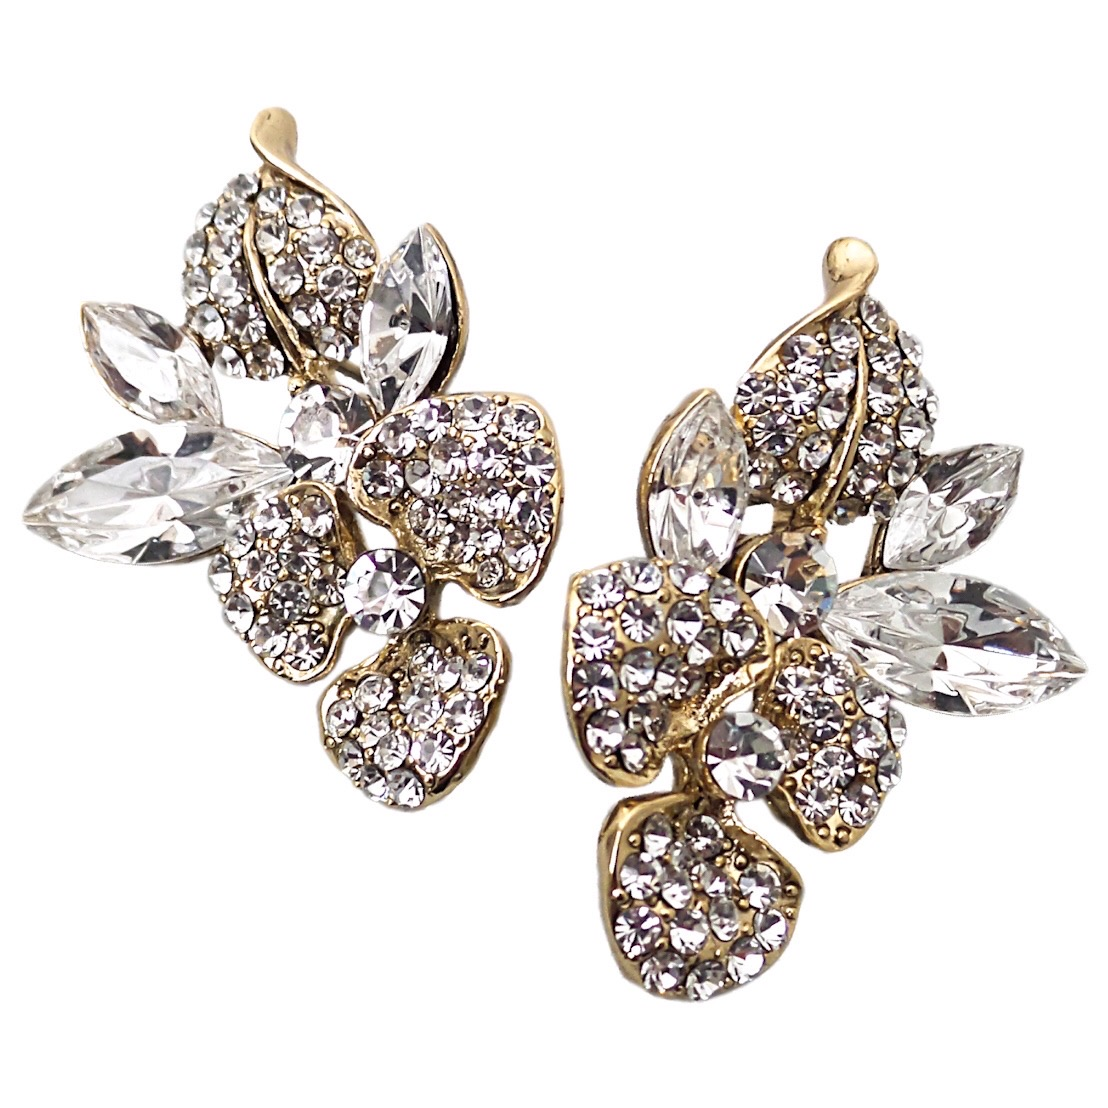 Earrings - DESERT ROSE/CG